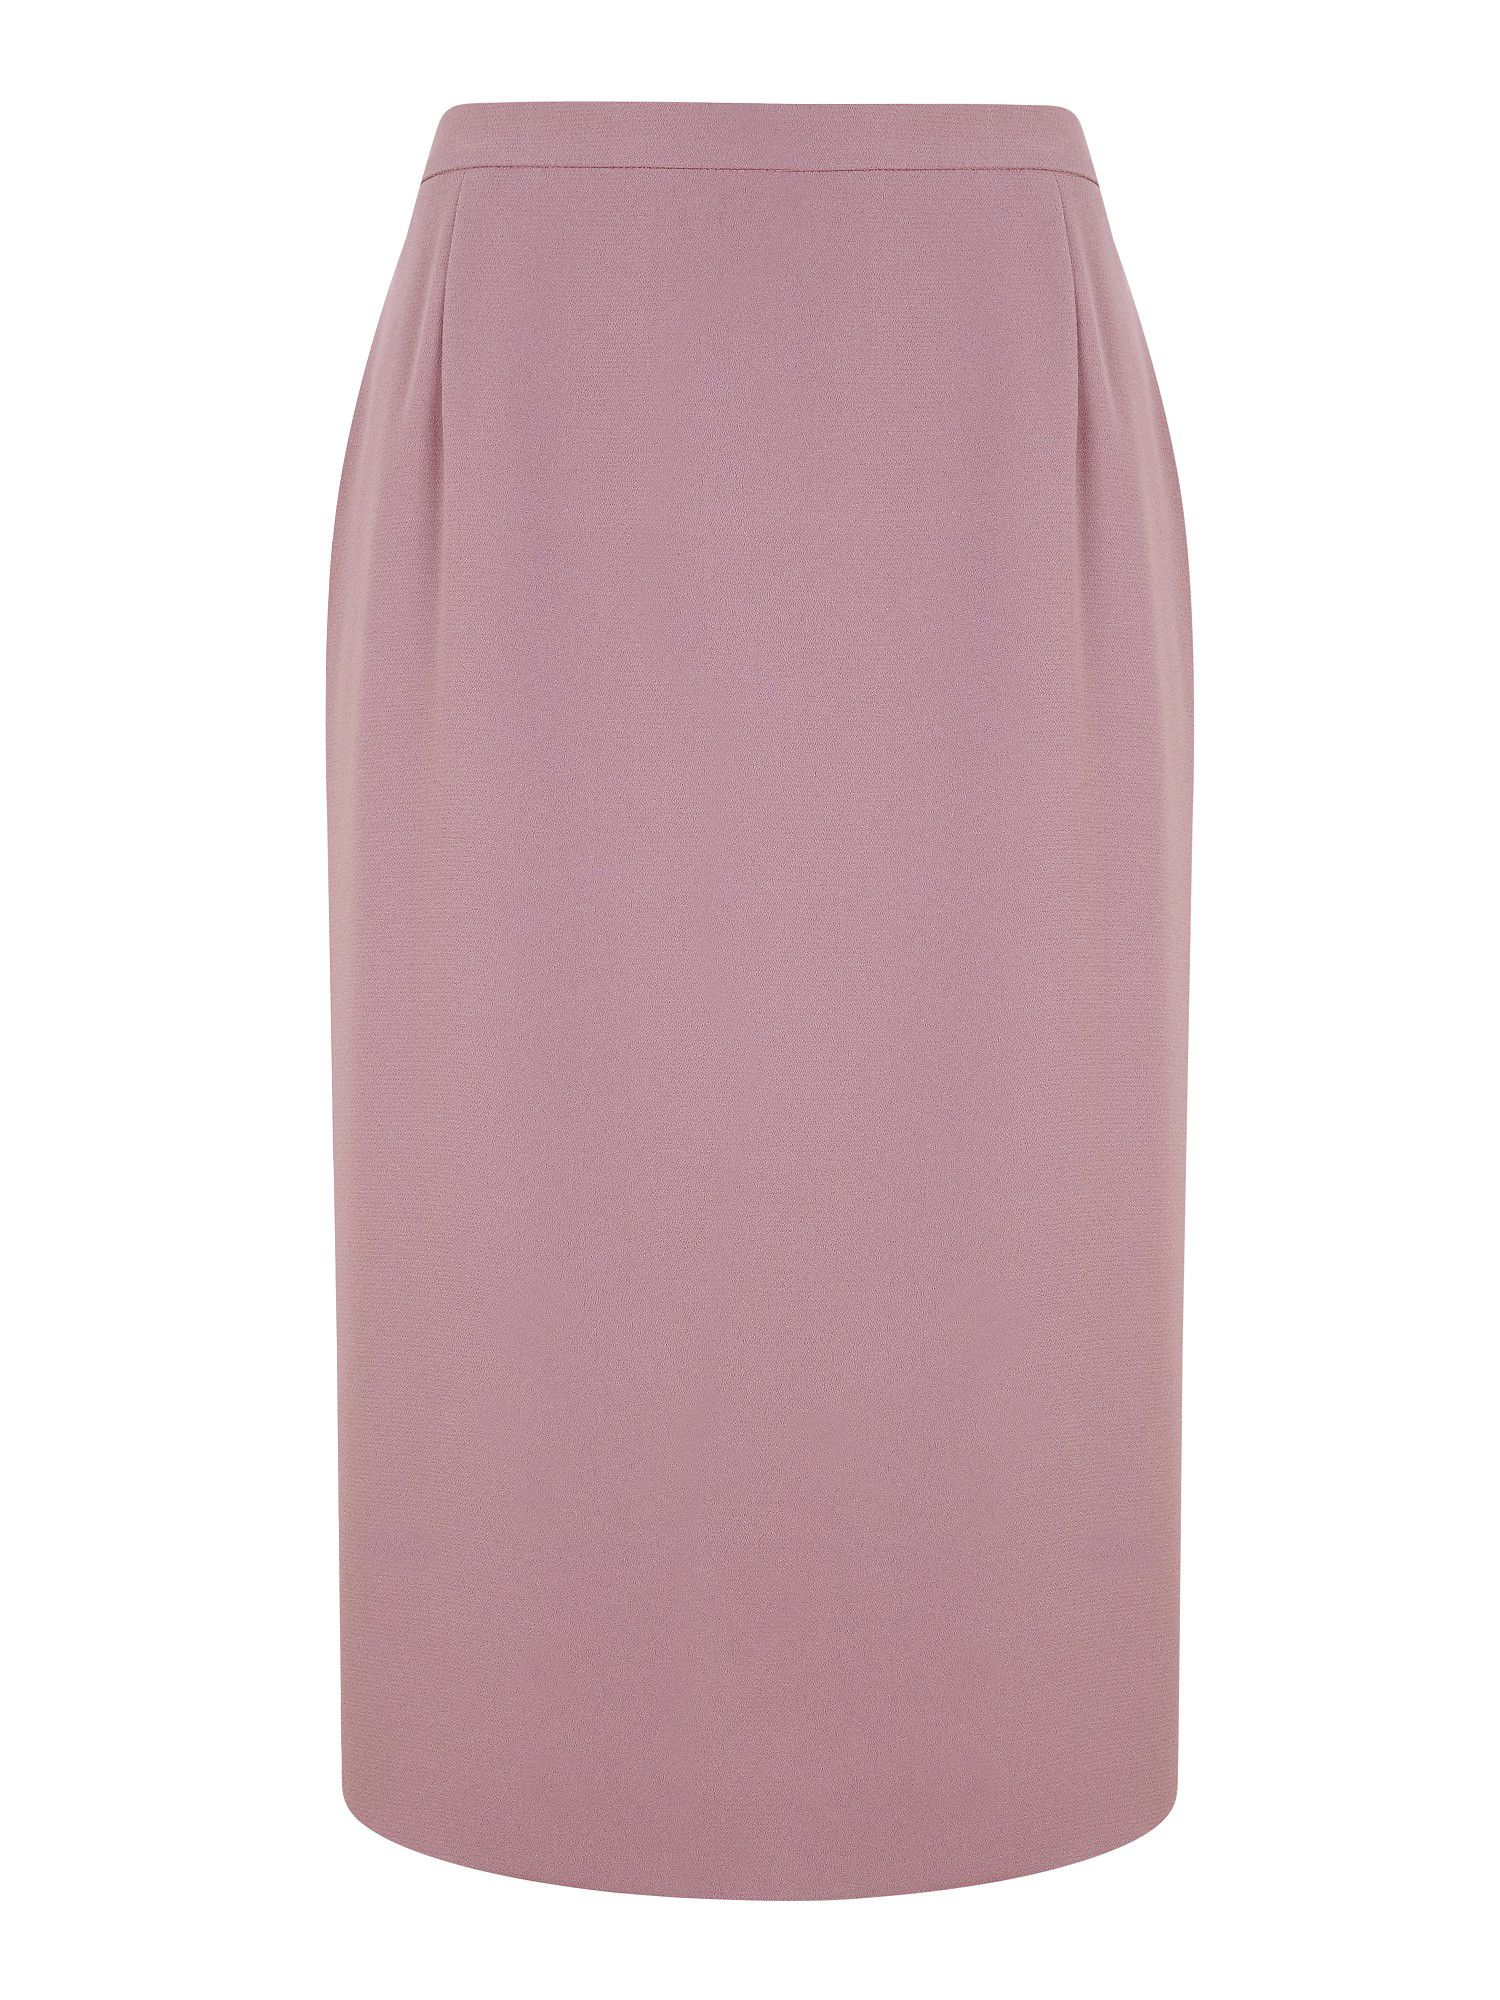 Mauve crepe pencil skirt